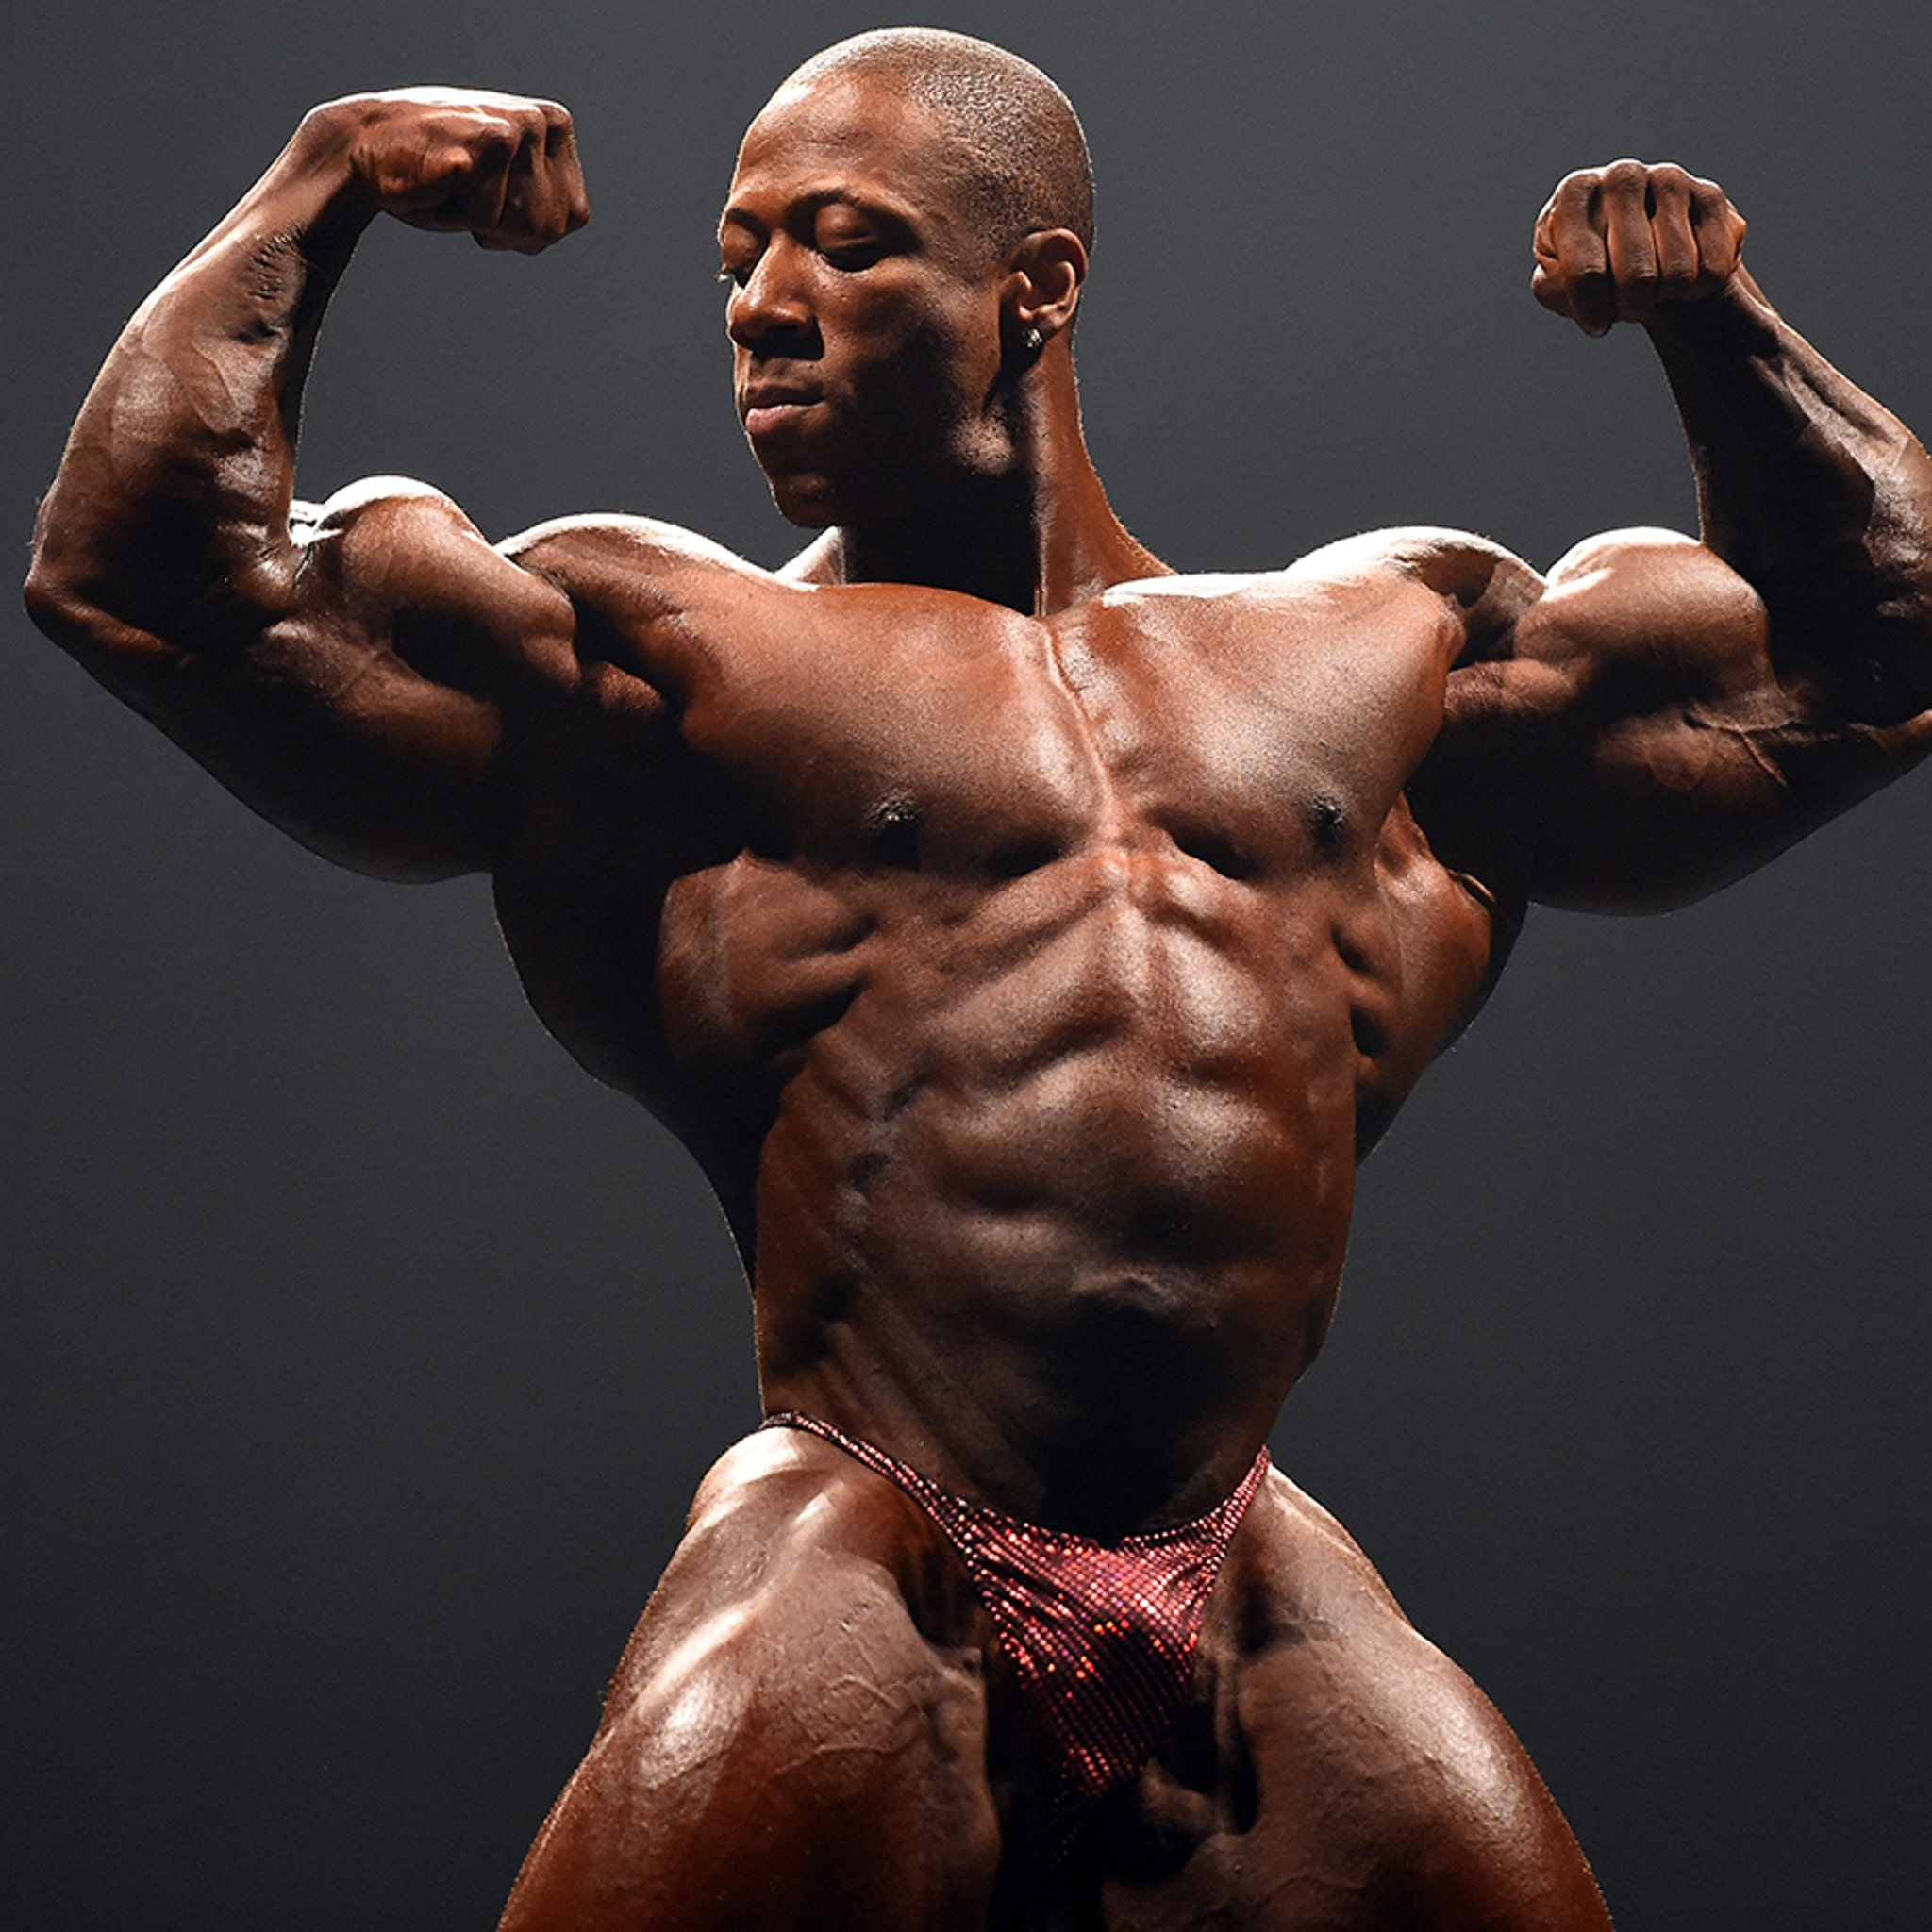 Mr Olympia 2019 Schedule Mr. Olympia' Shawn Rhoden Charged with Rape, Eligibility Revoked